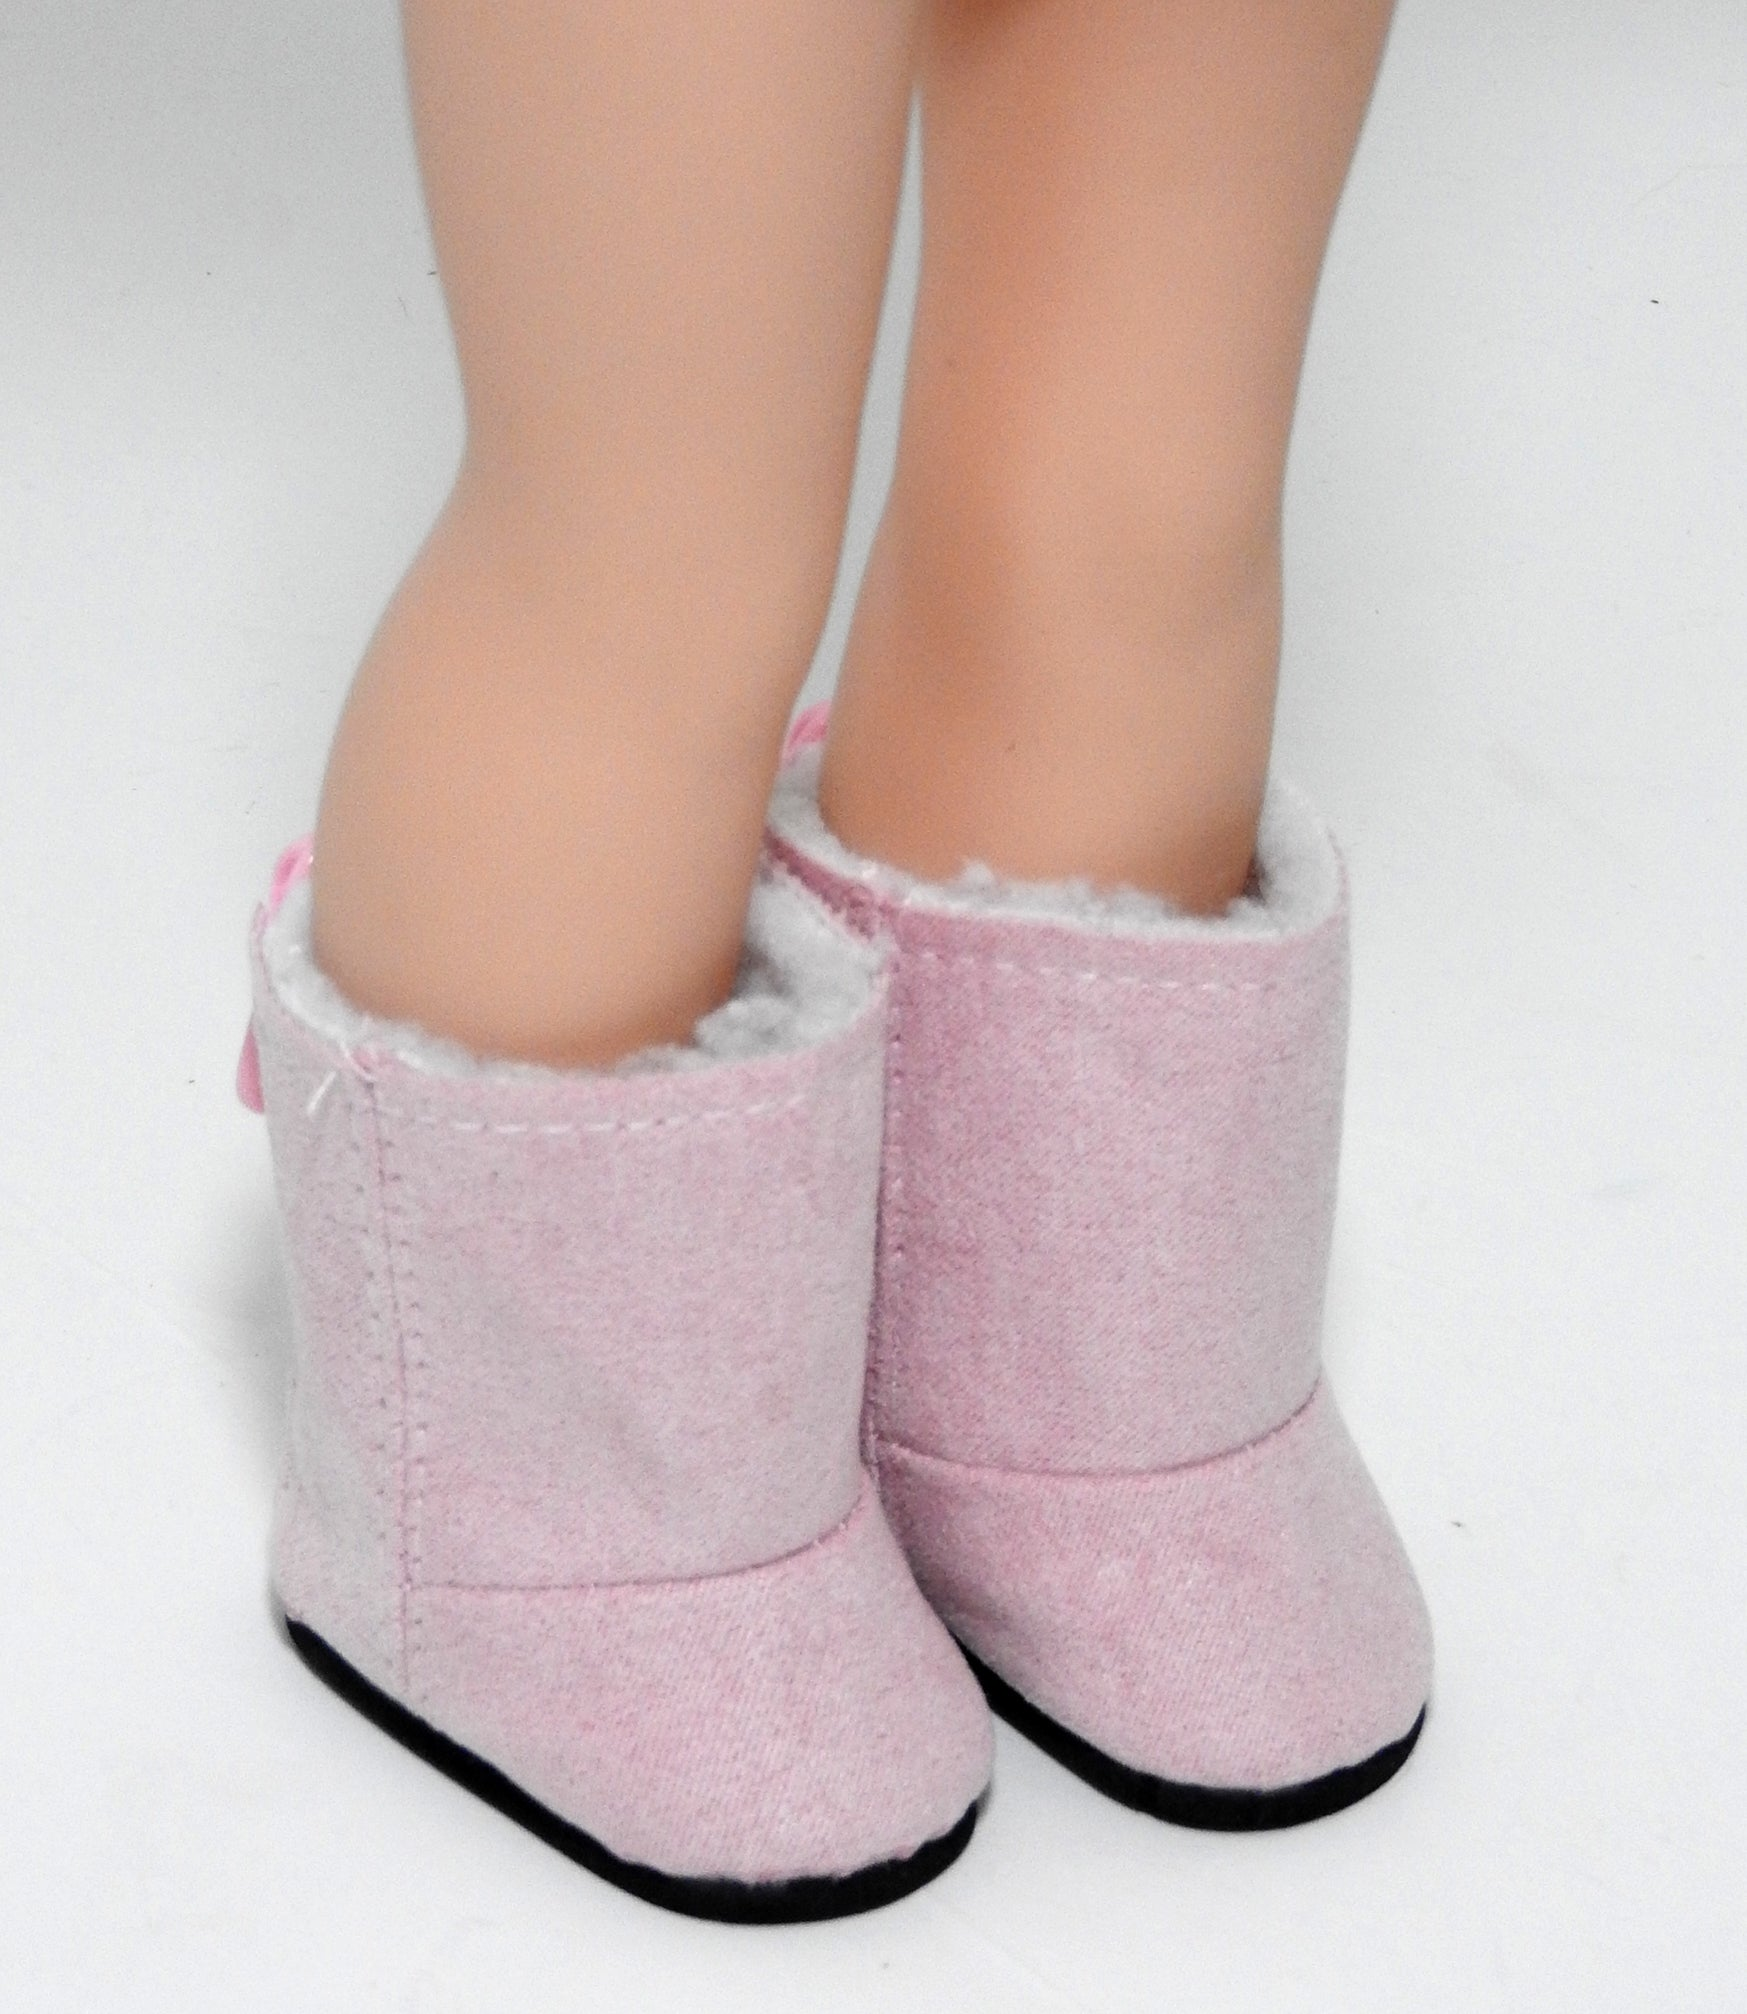 14.5 INCH DOLL Pink Boots fits Wellie Wishers Doll